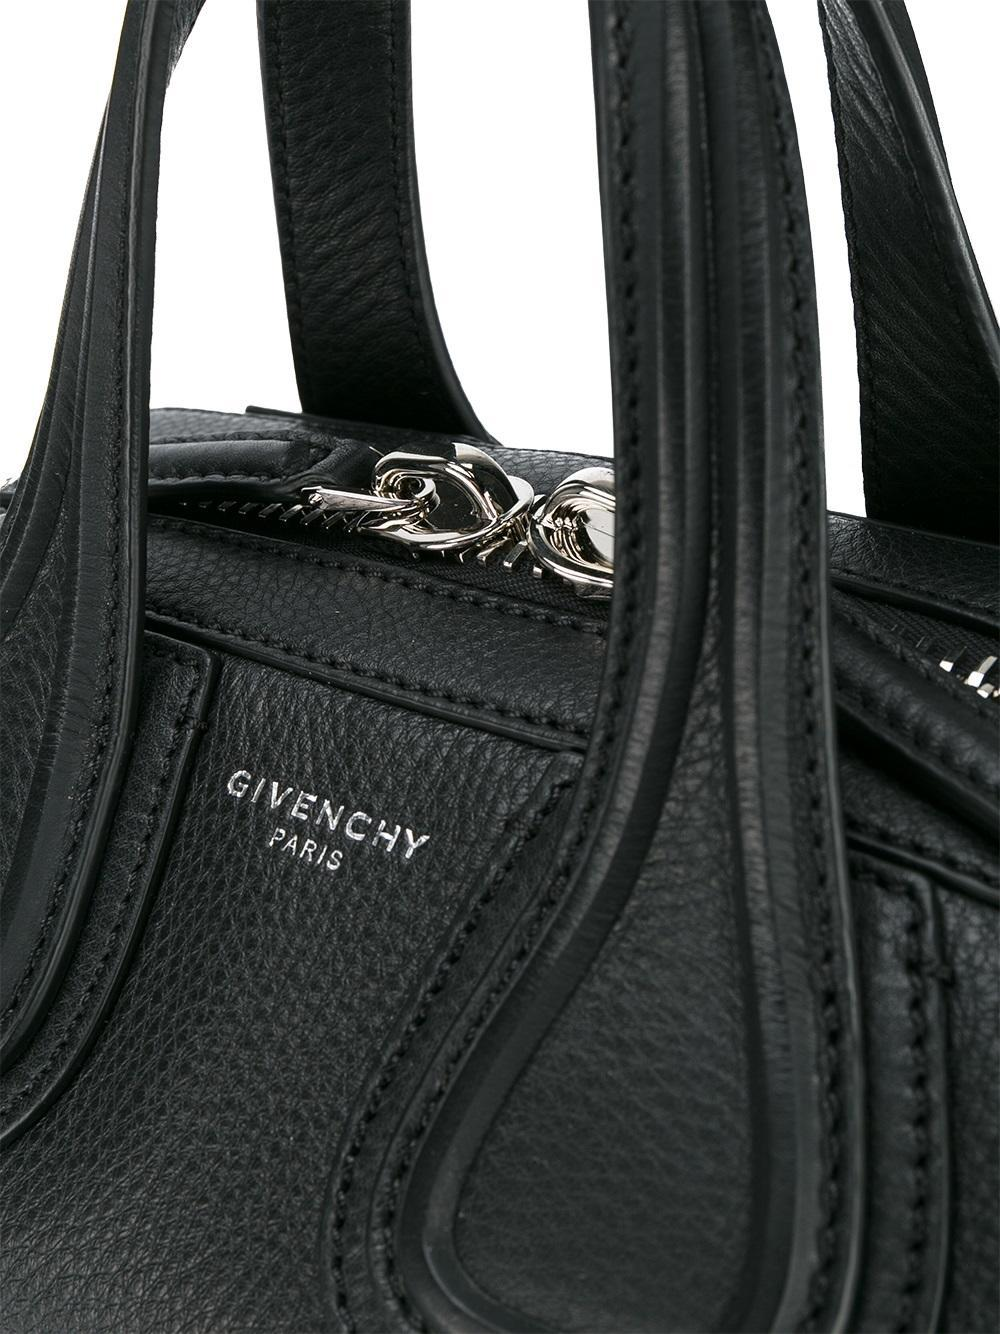 Givenchy - Multicolor Small Nightingale Tote - Lyst. View fullscreen 1cd239de24d79